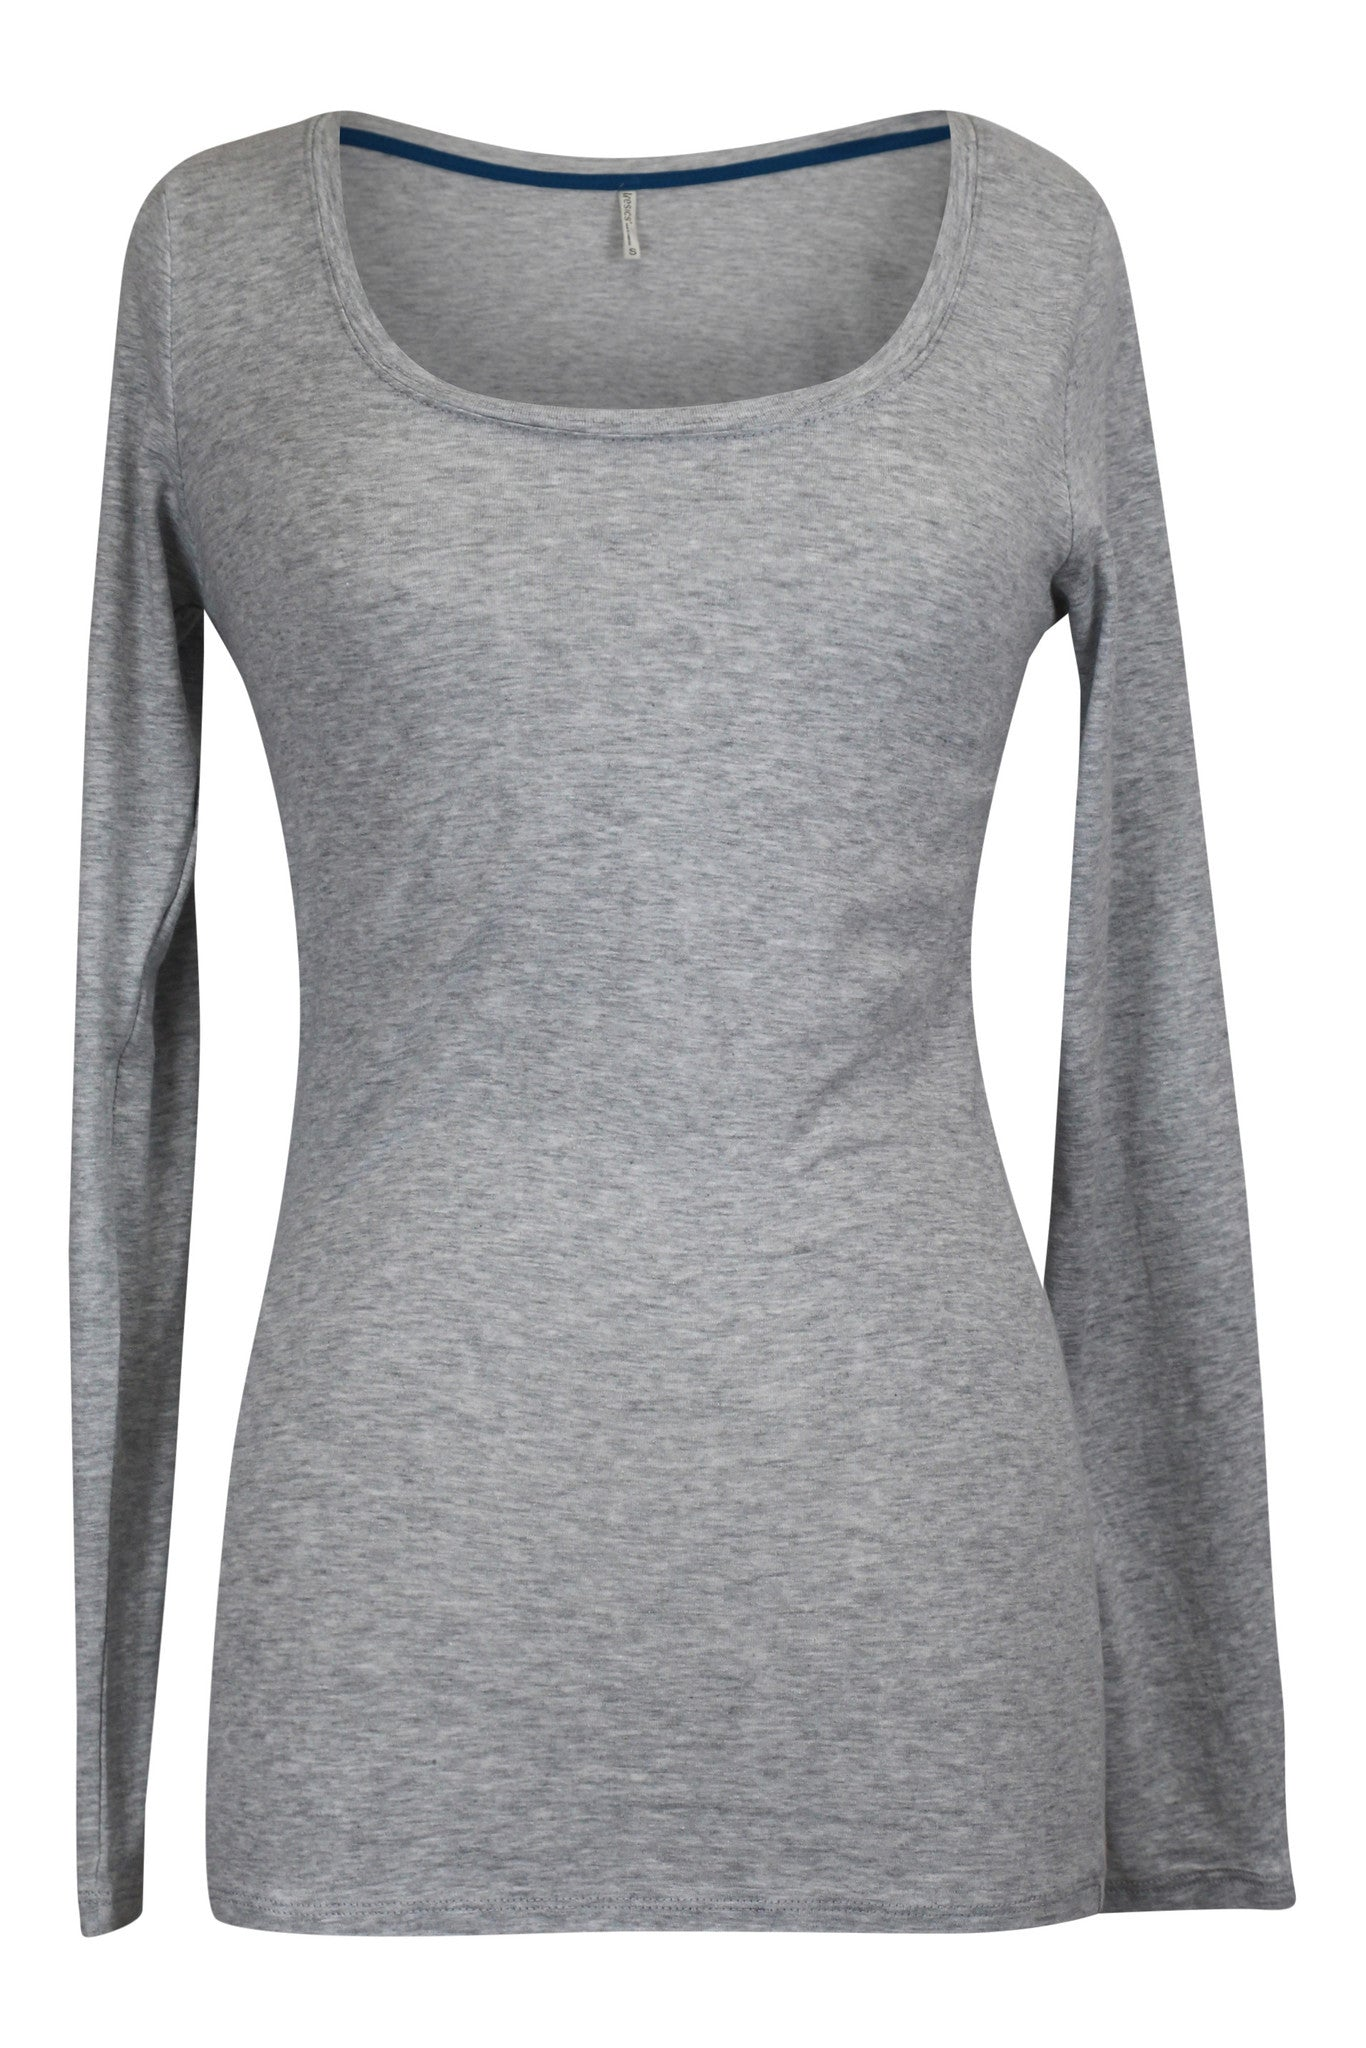 Basic Long Sleeve Scoop Neck Jersey Top - Gray